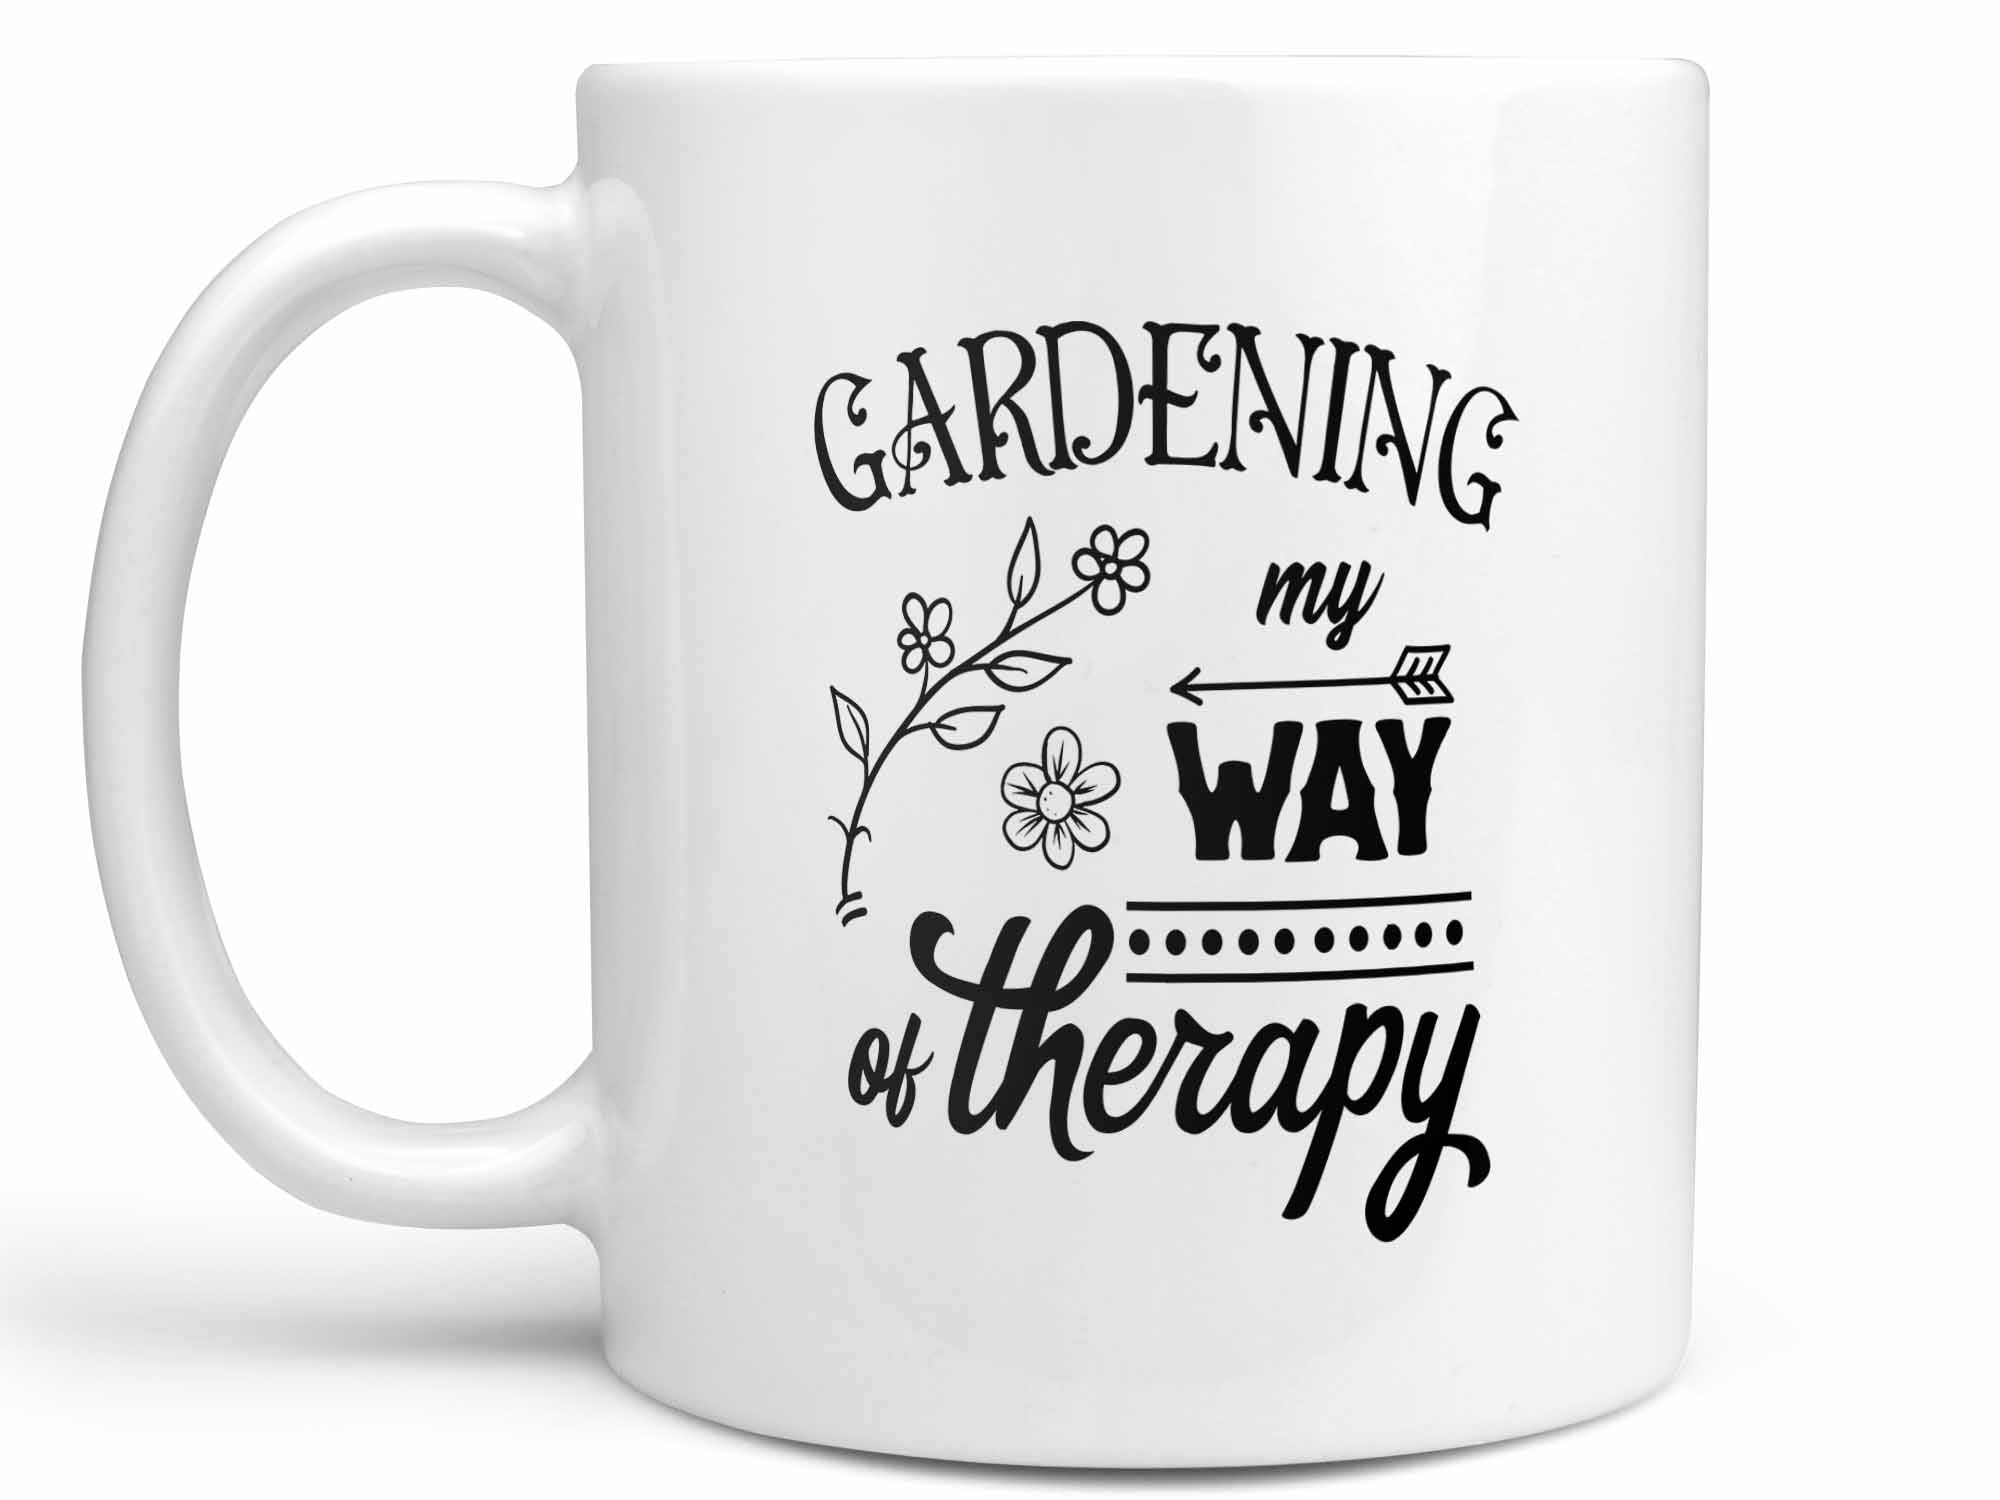 Gardening Way of Therapy Coffee Mug